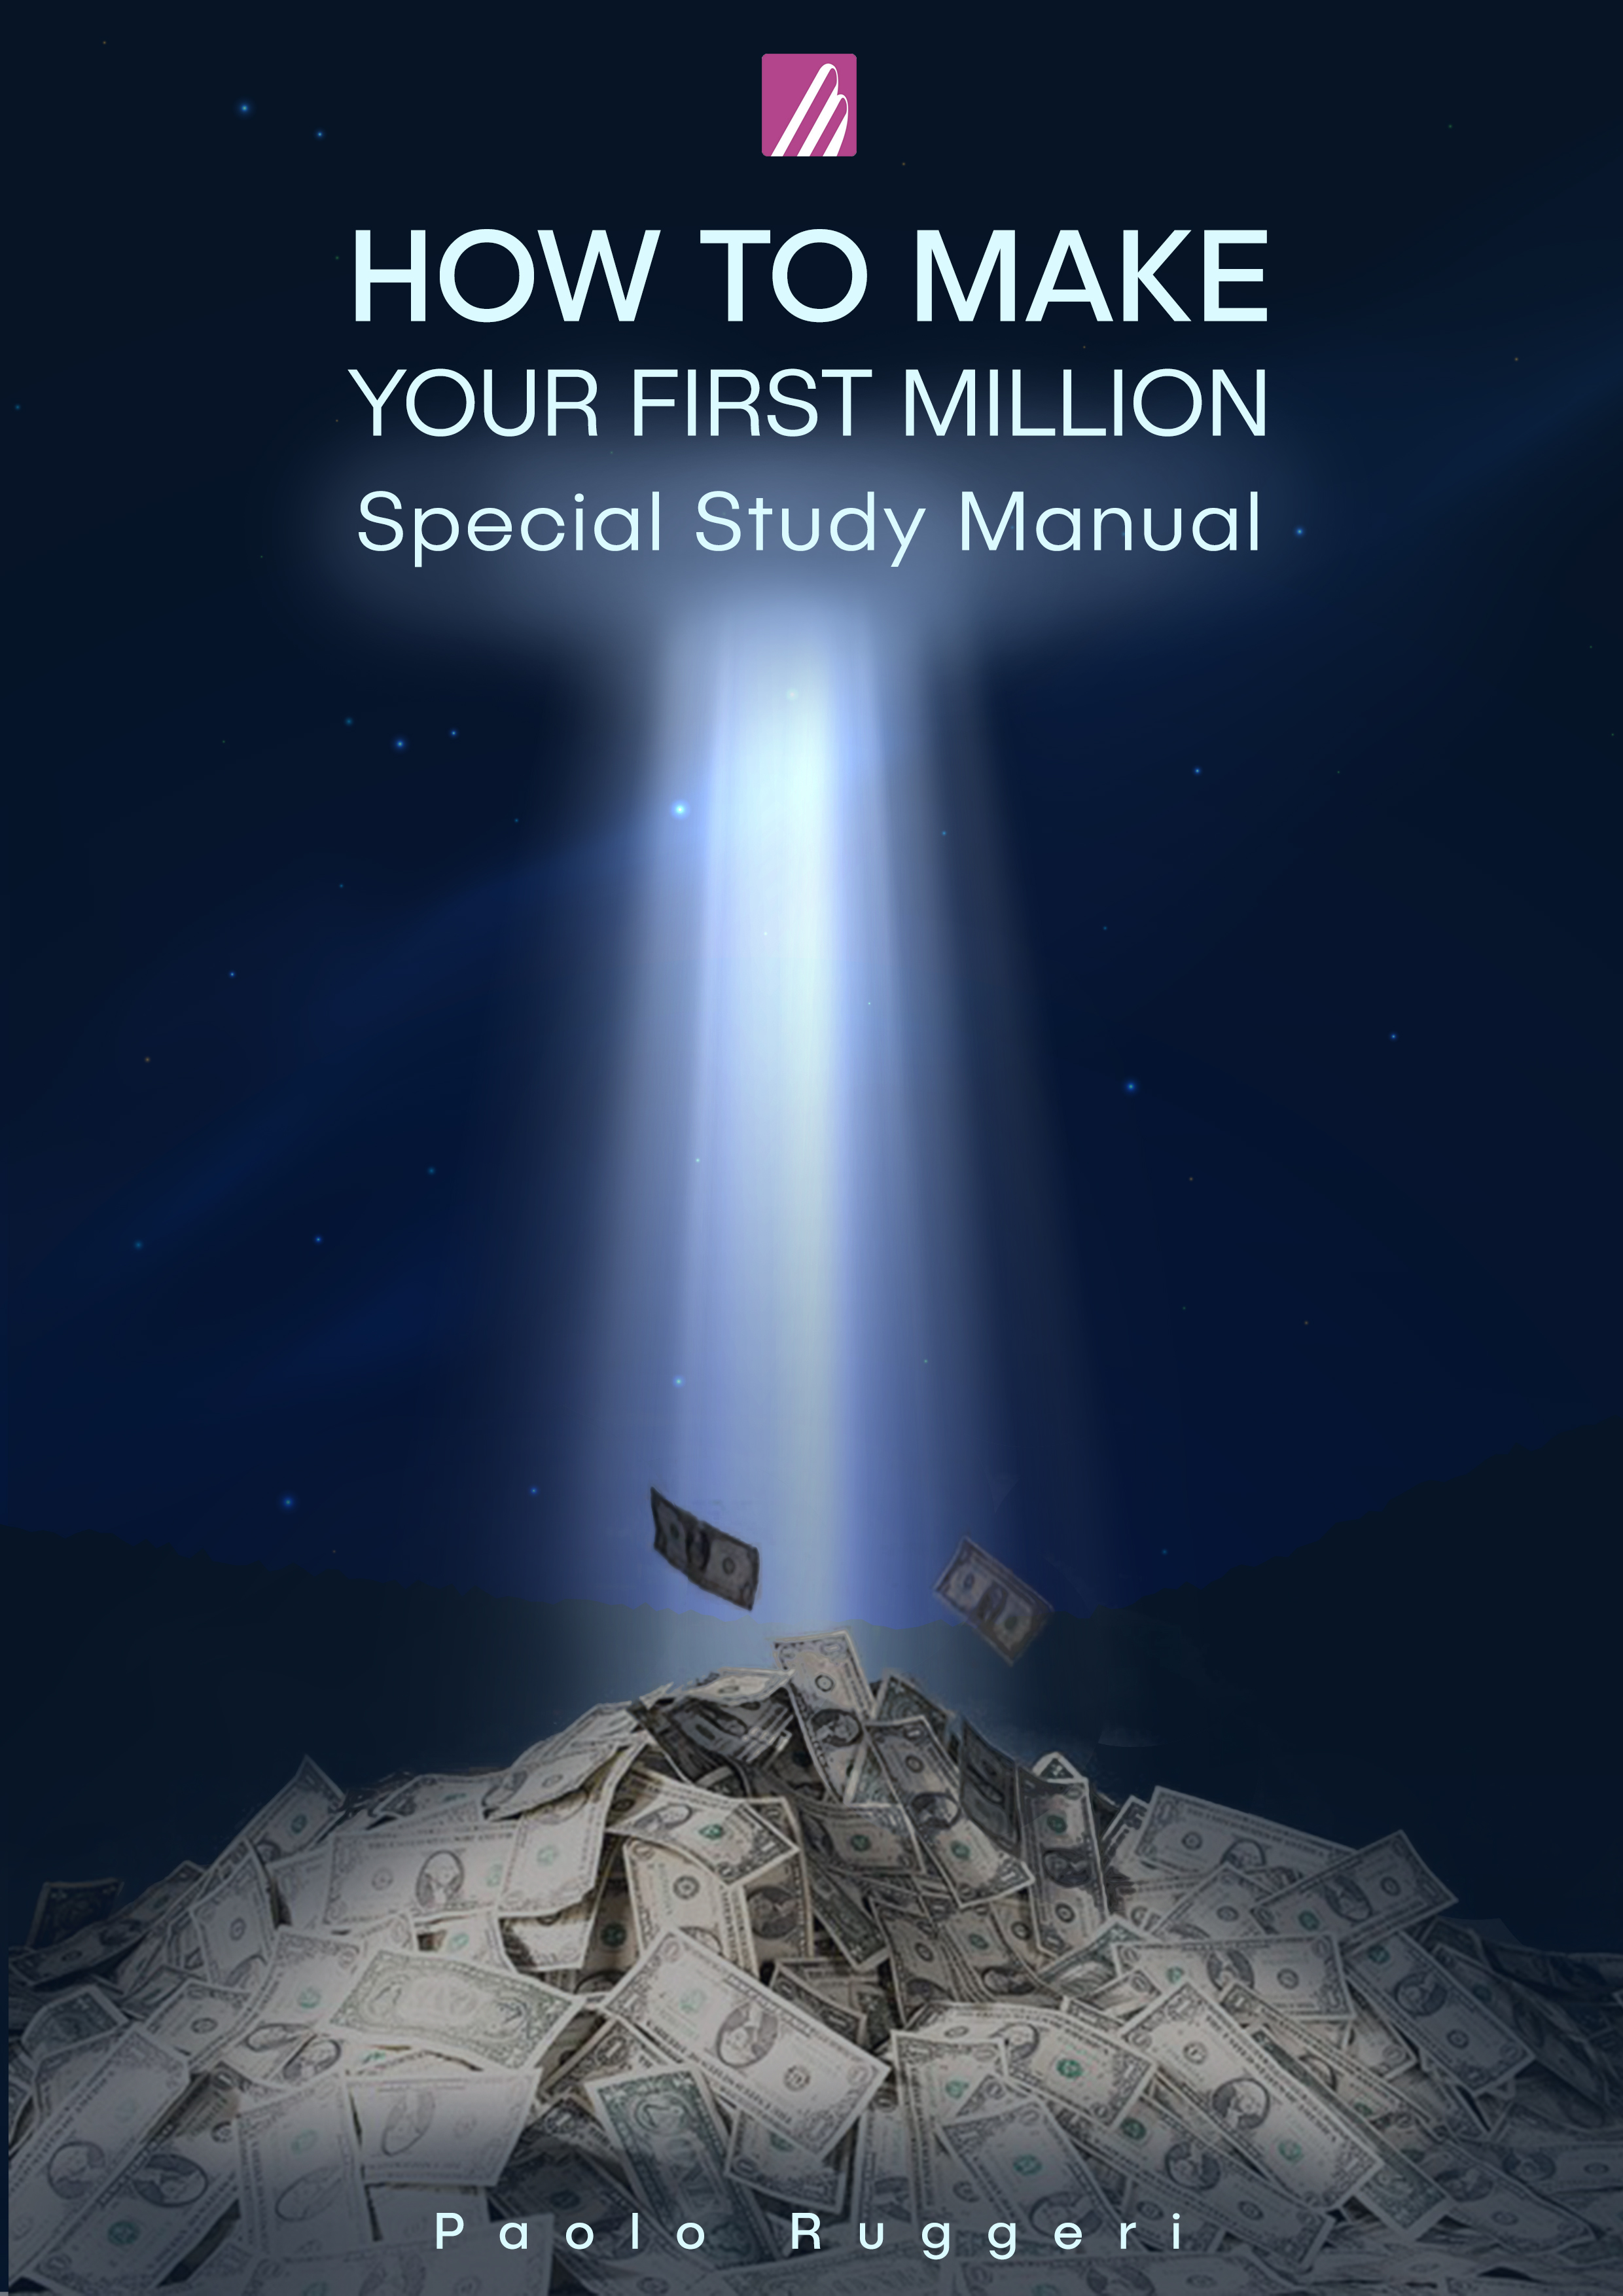 immagine REQUEST, FOR FREE, THE HOW I BUILT MY FIRST MILLION E-BOOK